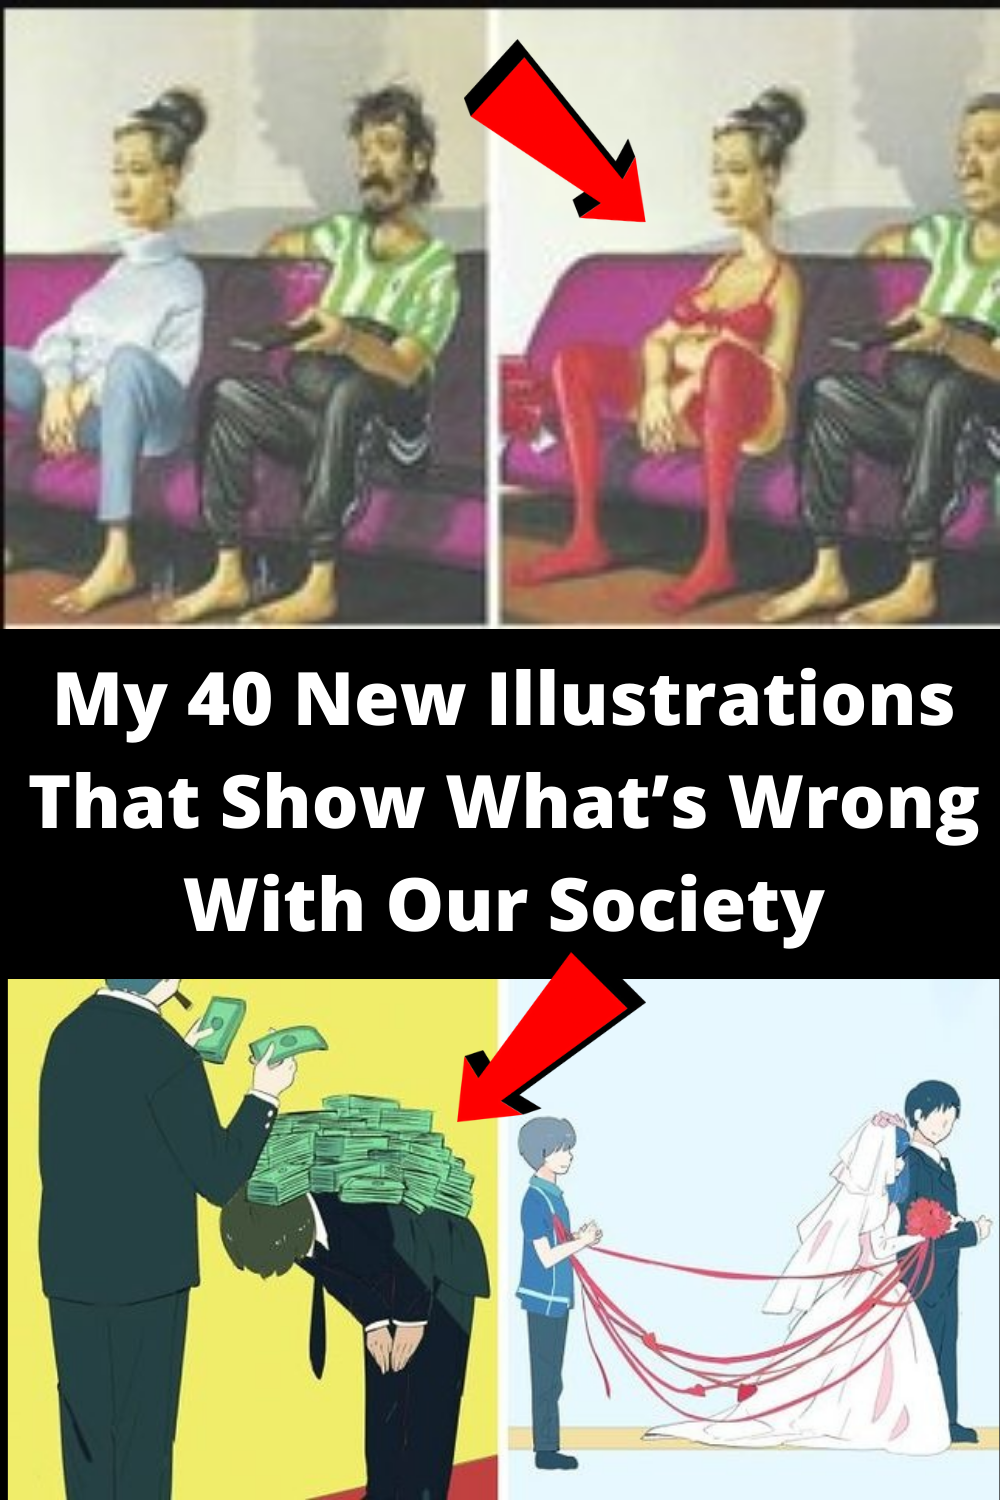 My 40 New #Illustrations That #Show What's #Wrong With Our #Society